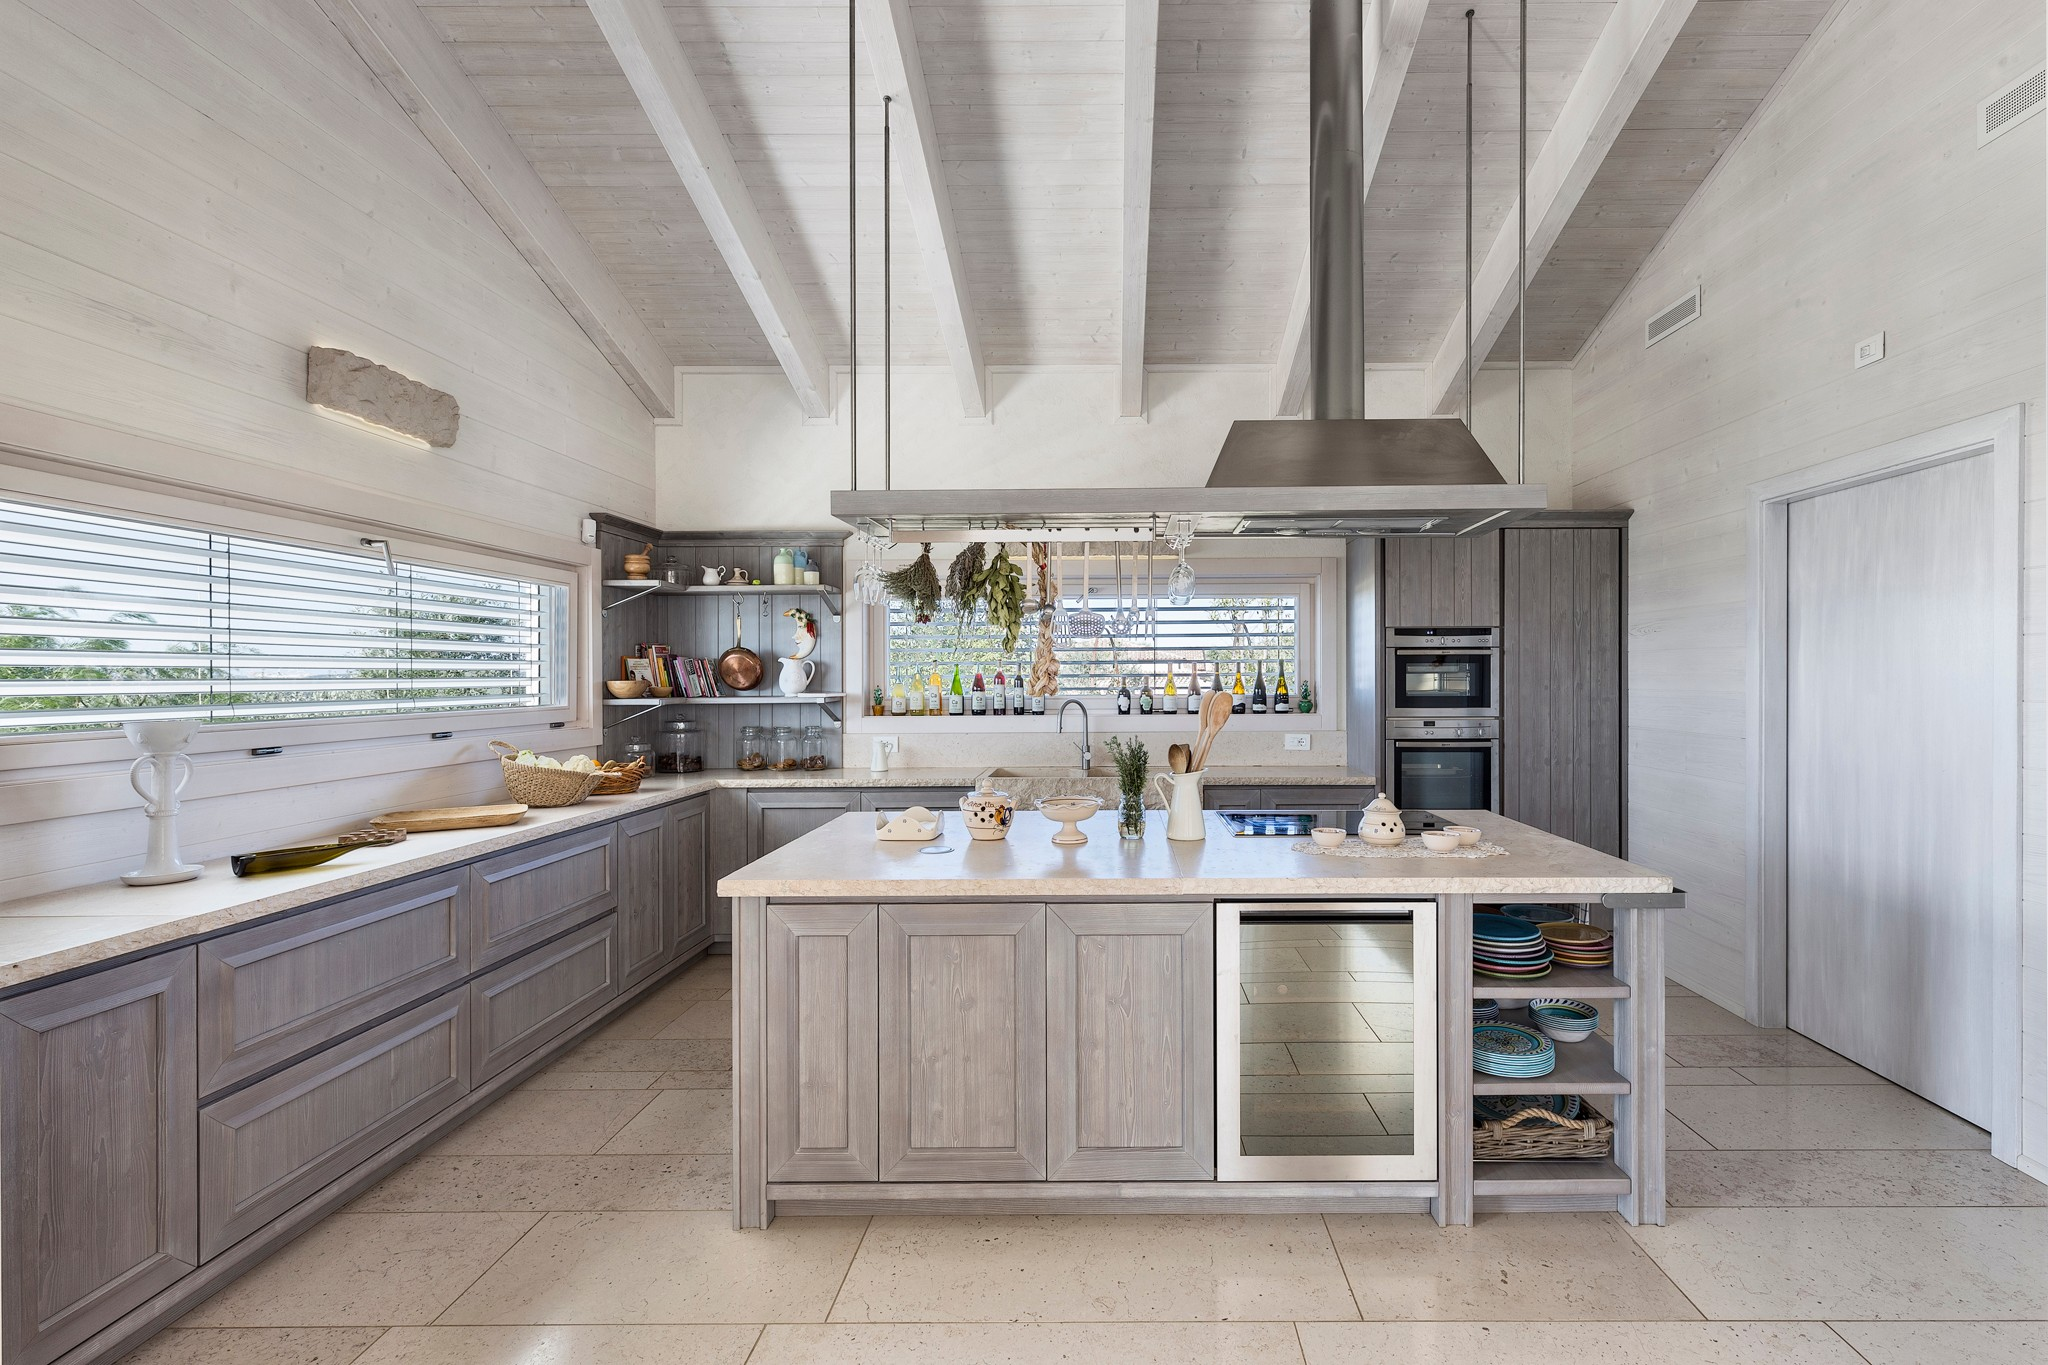 75 Beautiful White Kitchen With Brown Cabinets Pictures Ideas January 2021 Houzz